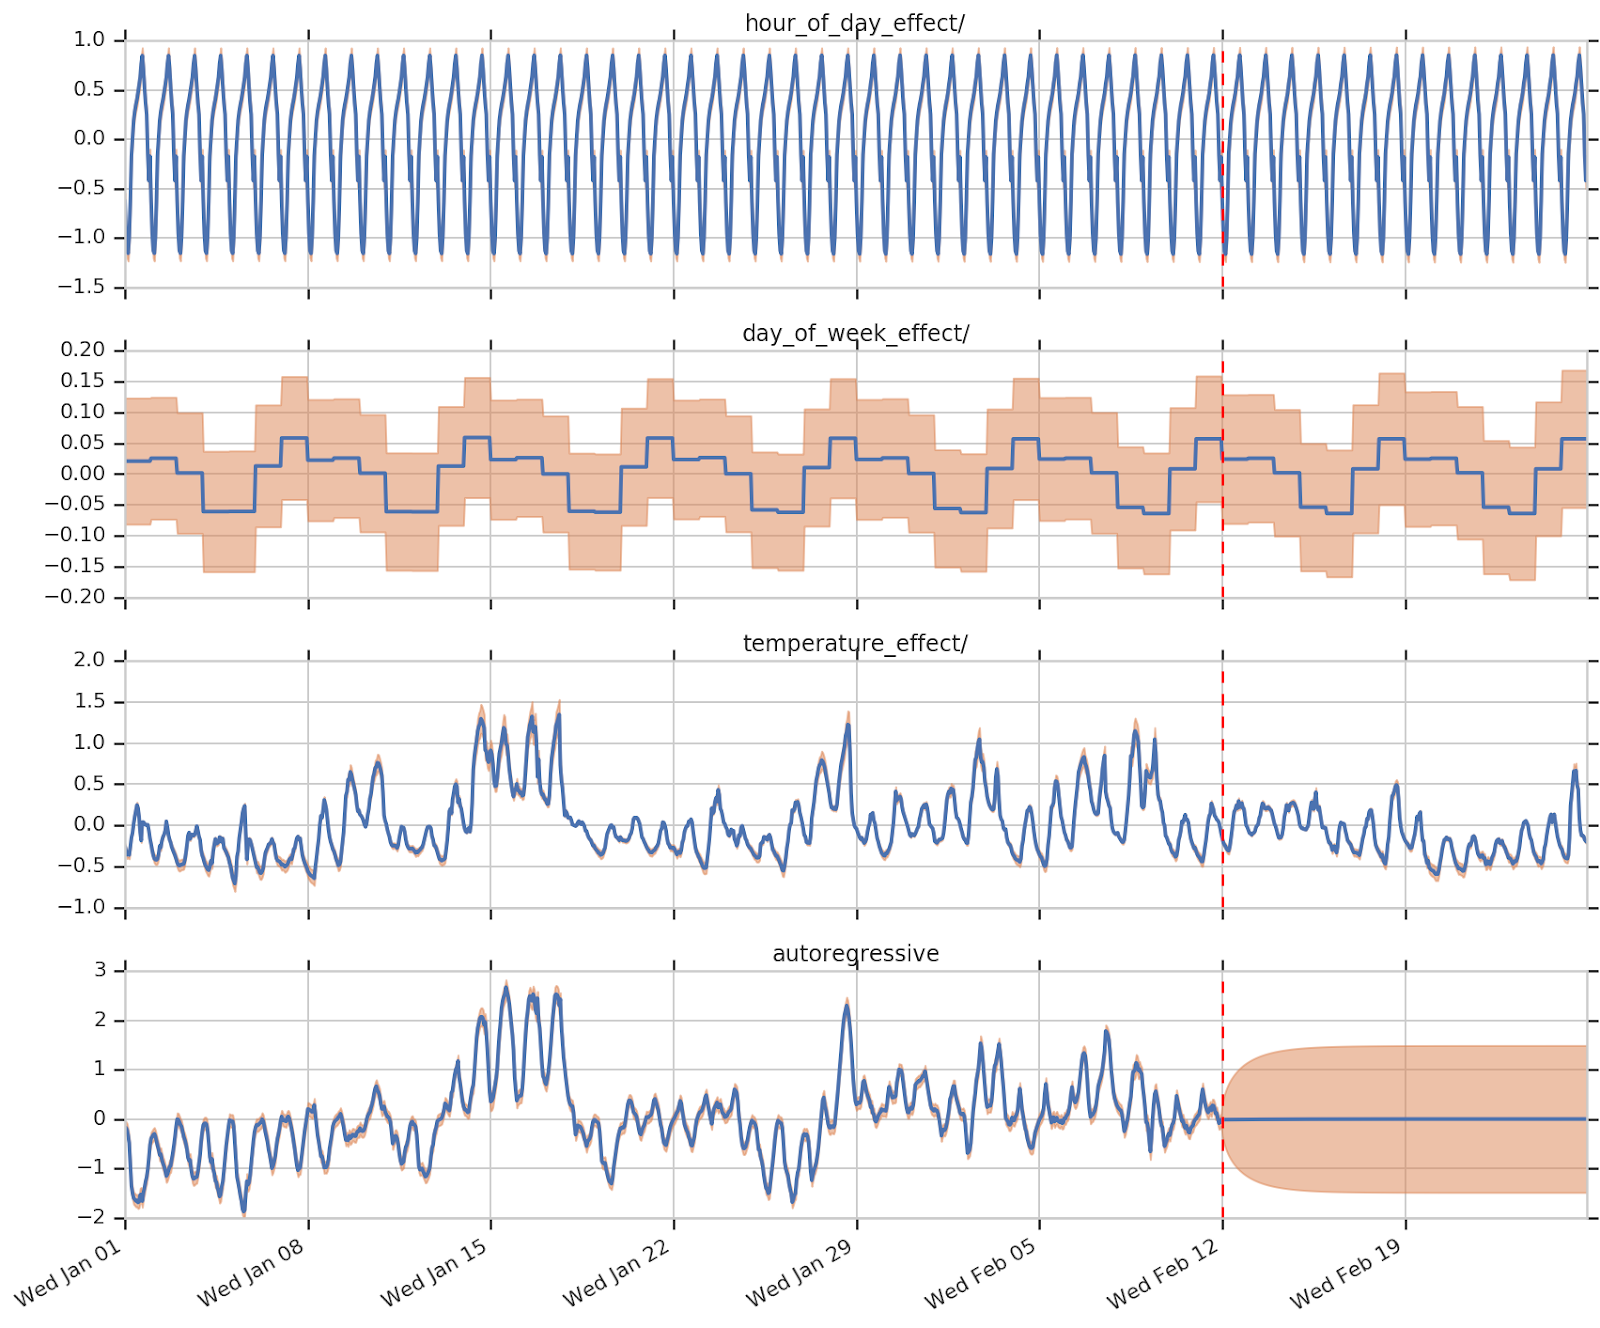 Structural Time Series modeling in TensorFlow Probability